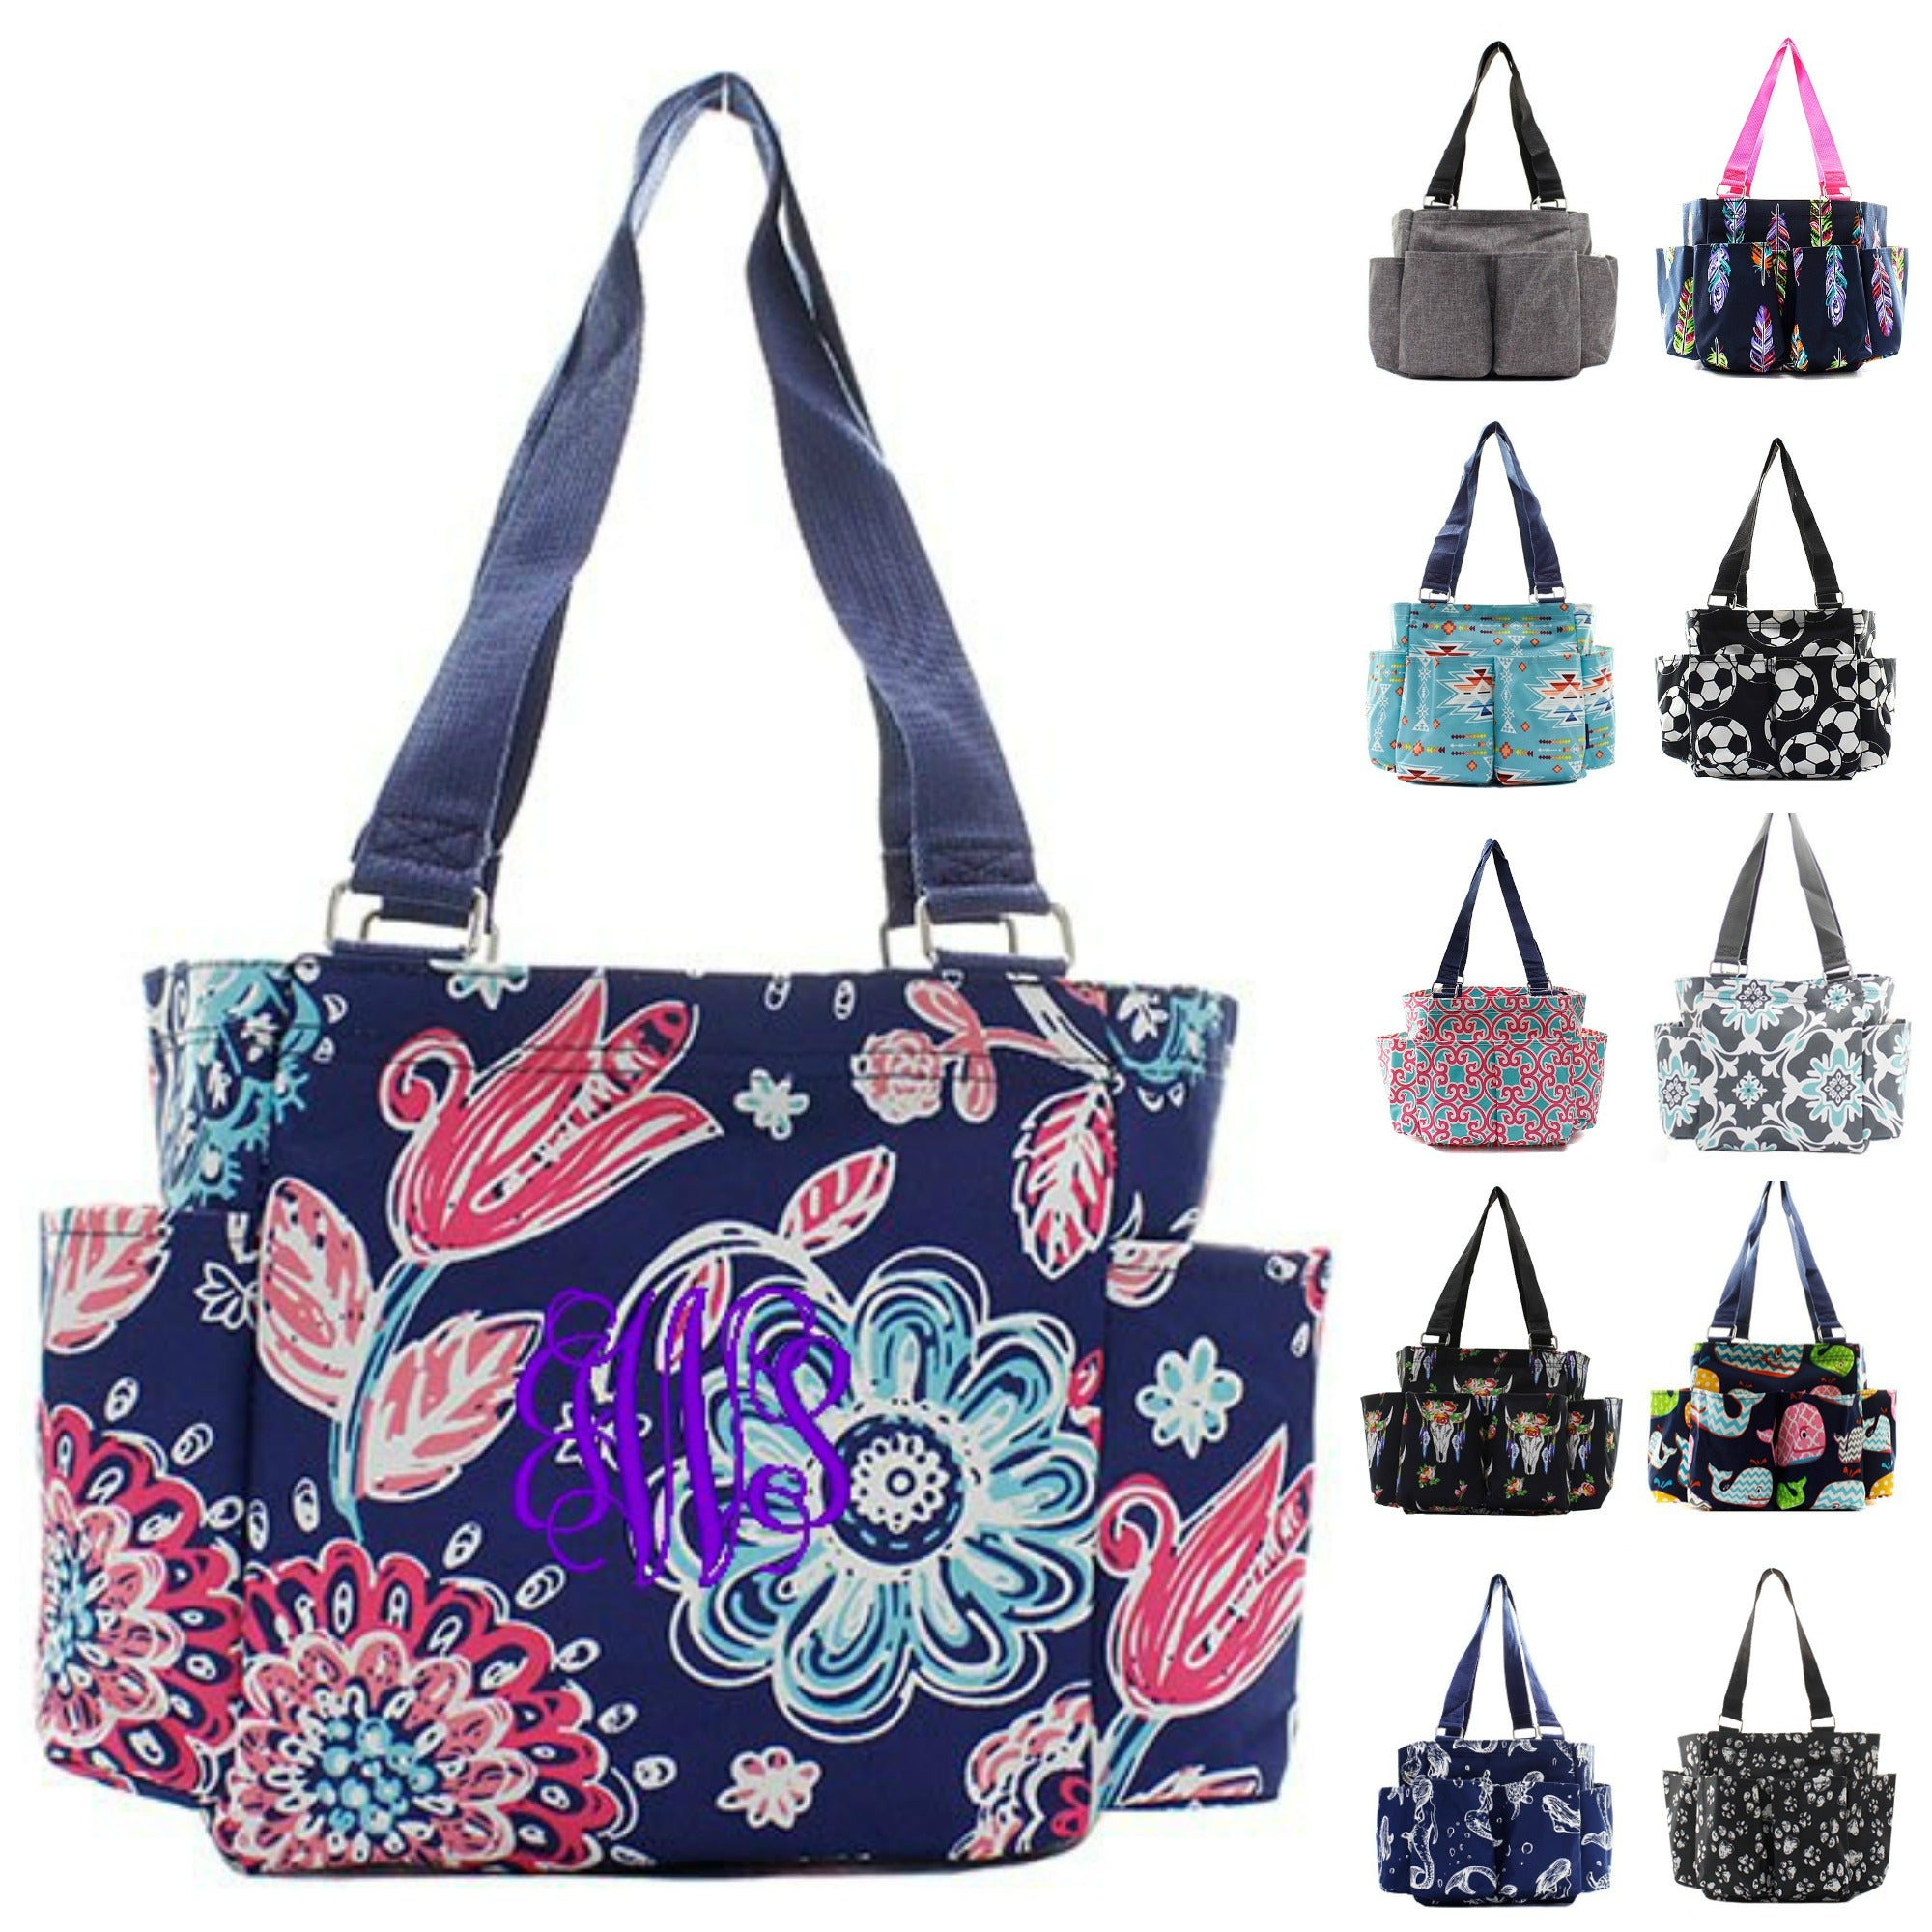 Personalized Caddy Organizing Tote Bag – Gifts Happen Here 8f75f62c3b470